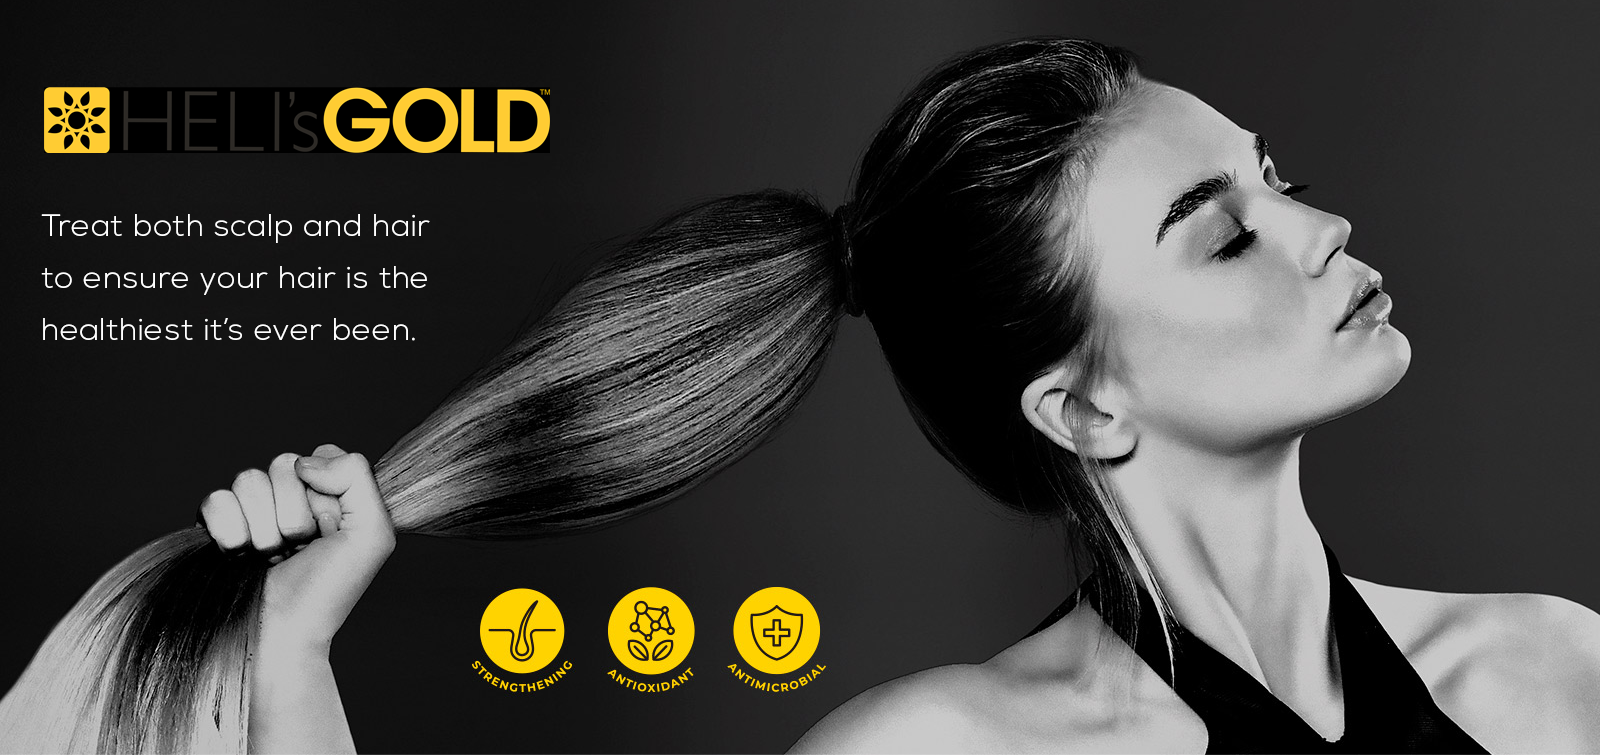 Helis Gold Scalp and Hair treatment